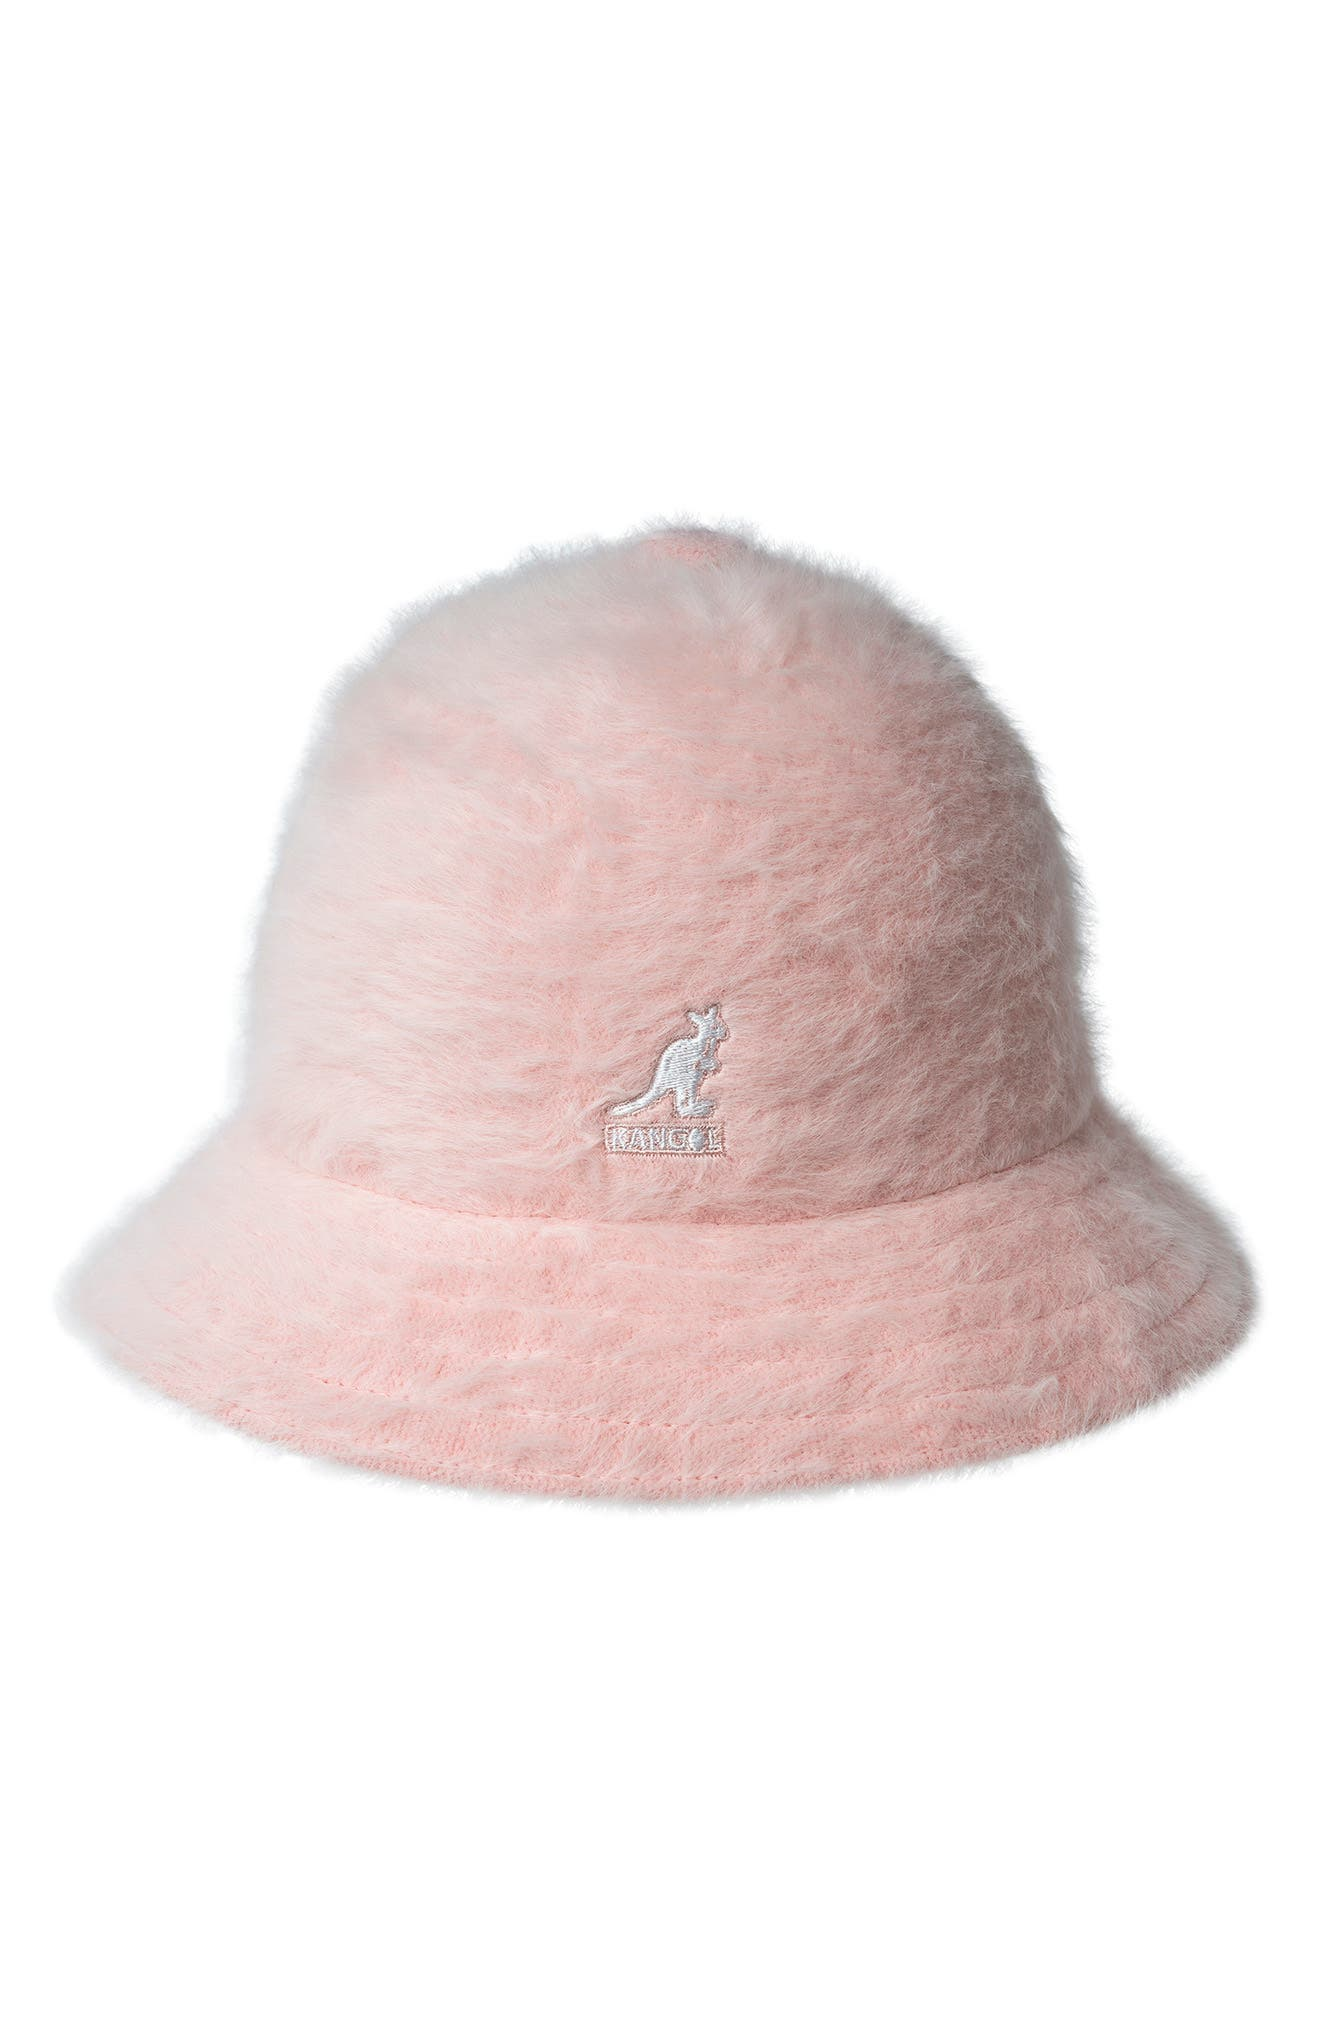 Kangol\\\'s iconic furry angora blend adds throwback vibes to a casual bucket cap with logo embroidery adding a signature touch to this \\\'80s hip-hop favorite. Style Name: Kangol Furgora Casual Bucket Hat. Style Number: 5738208. Available in stores.